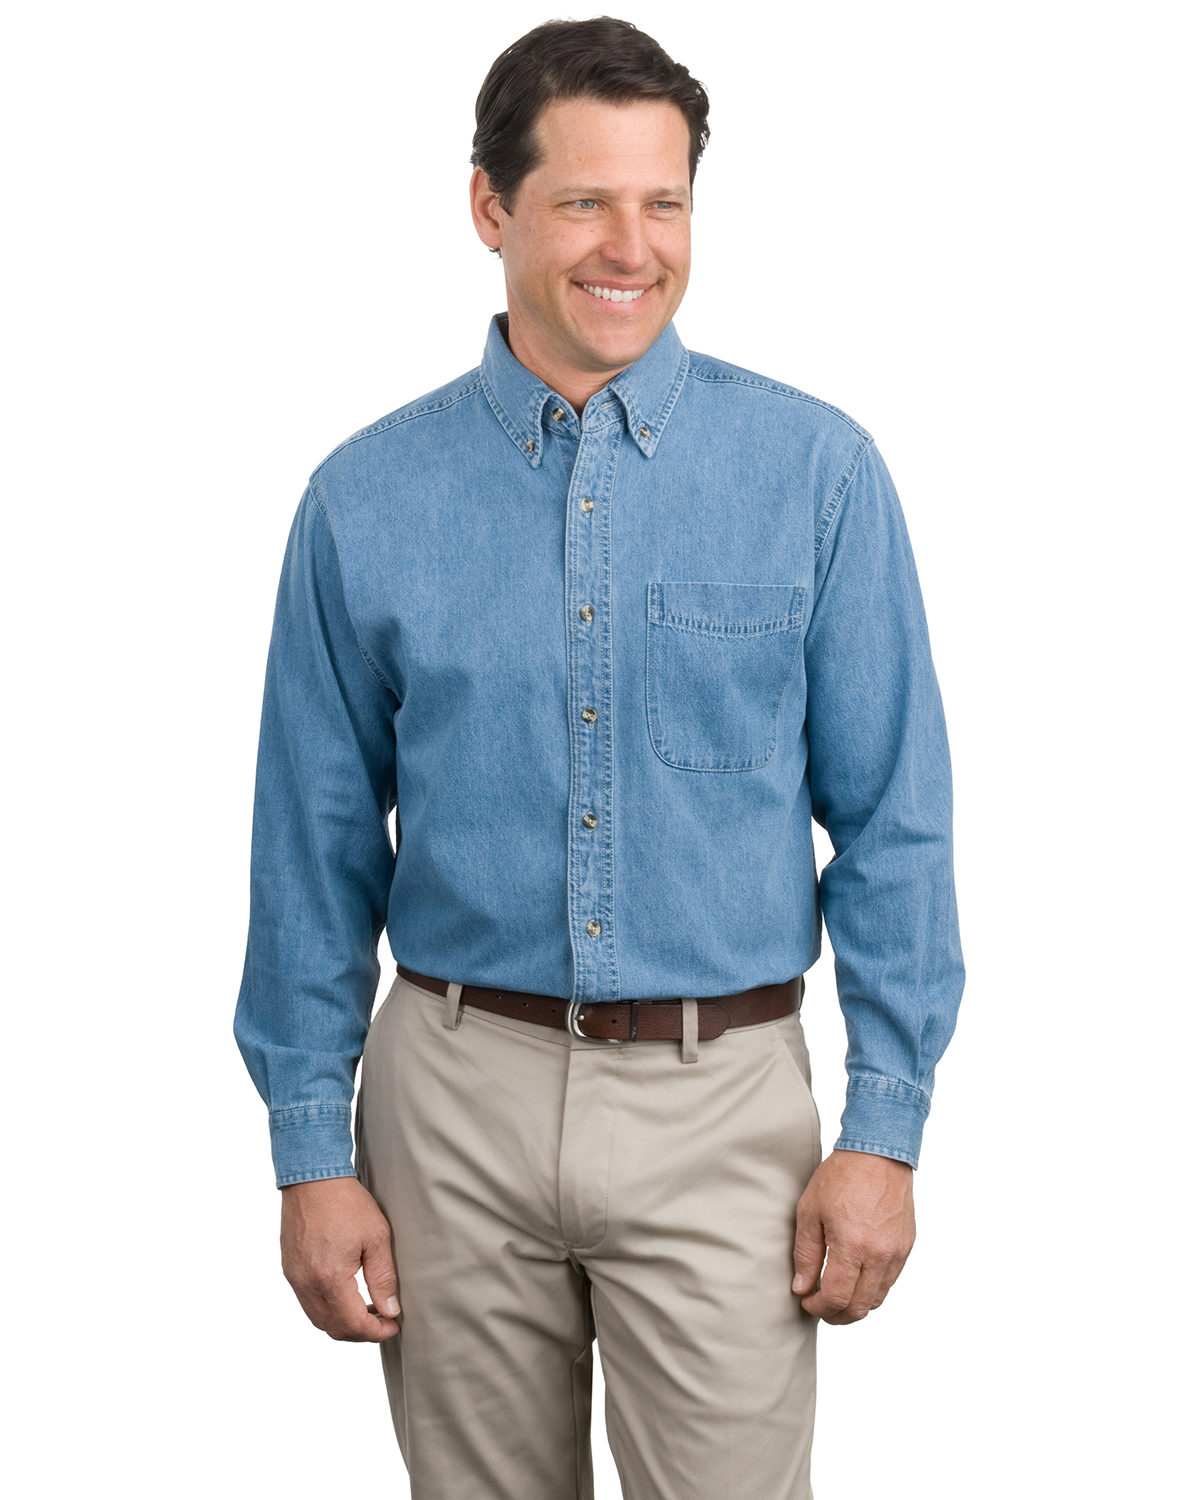 Port Authority S600 Adult Long Sleeve Denim Shirt at GotApparel